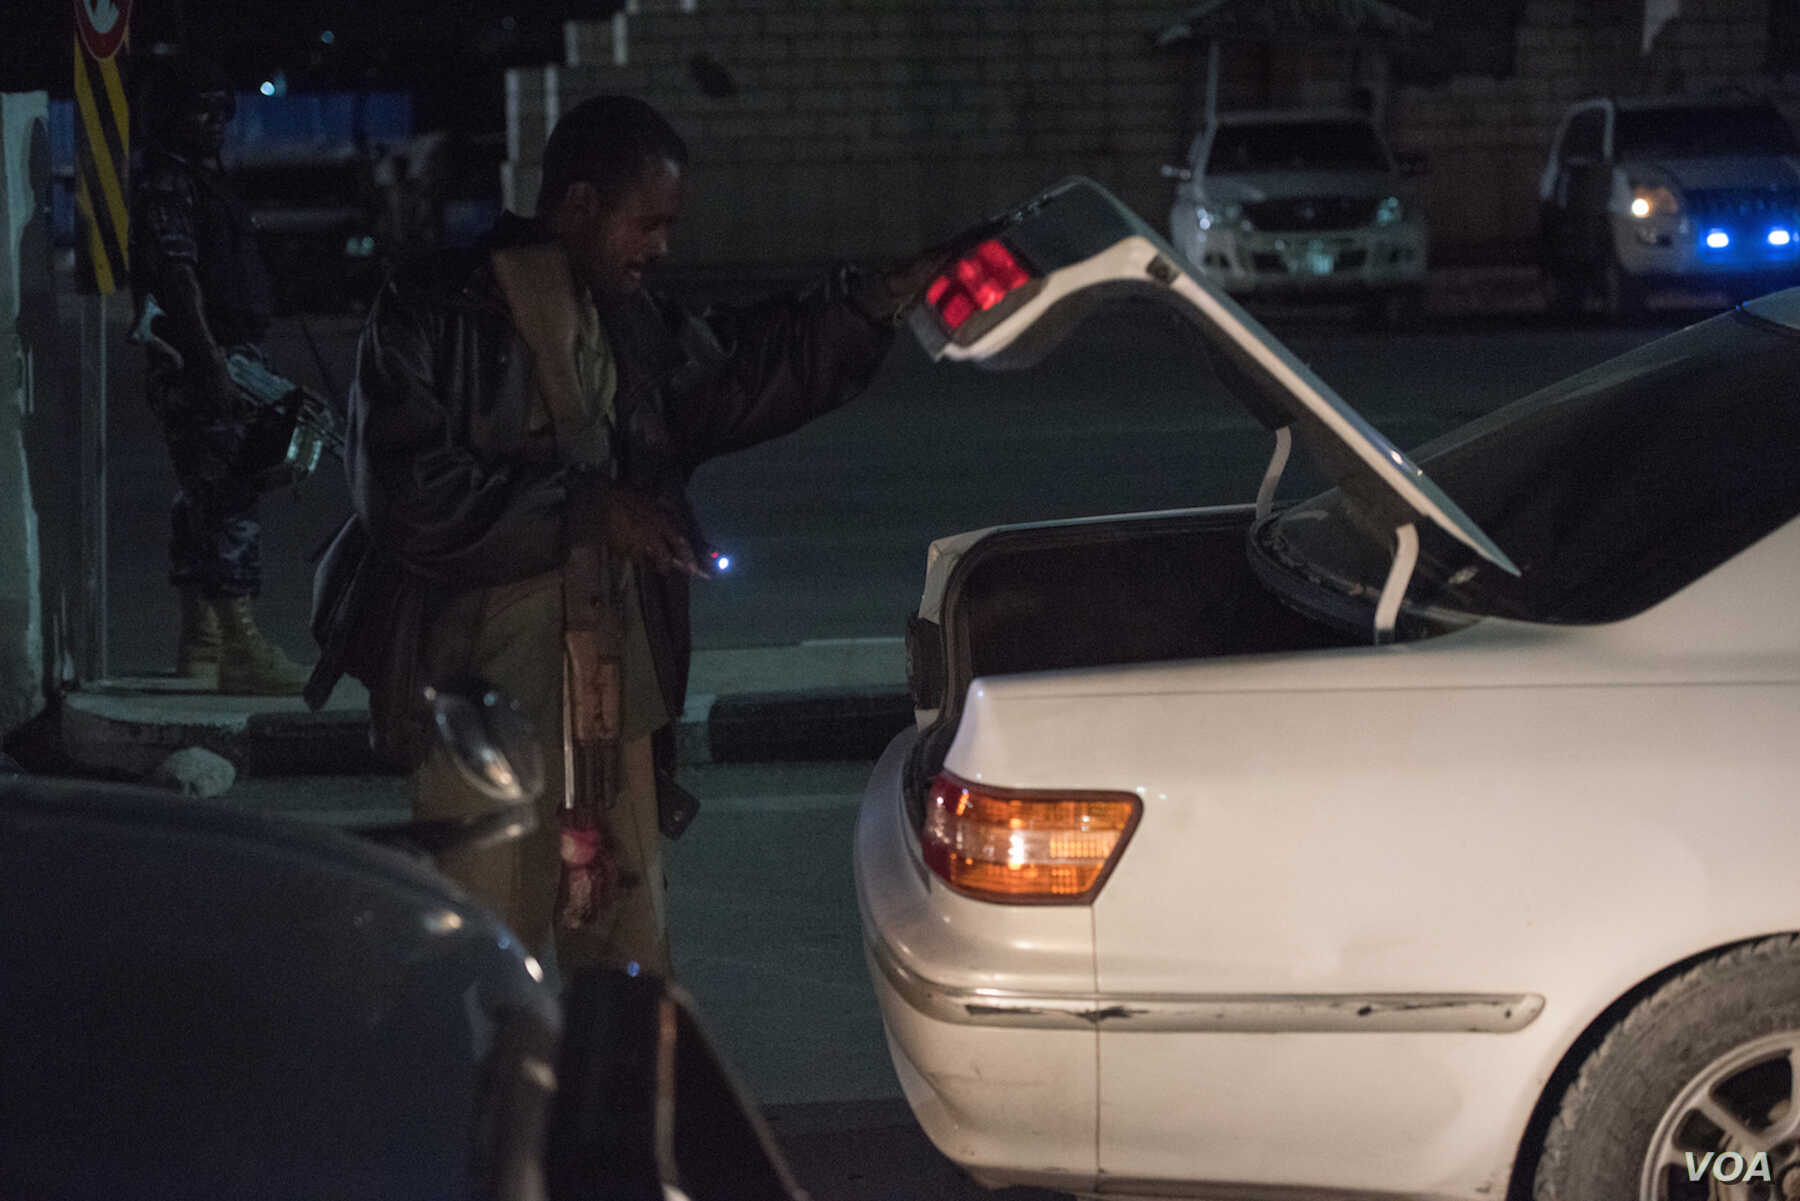 A Somali security officer checks the trunk of a car at a checkpoint in Mogadishu, Sept. 20, 2016. (Photo: J. Patinkin/VOA)